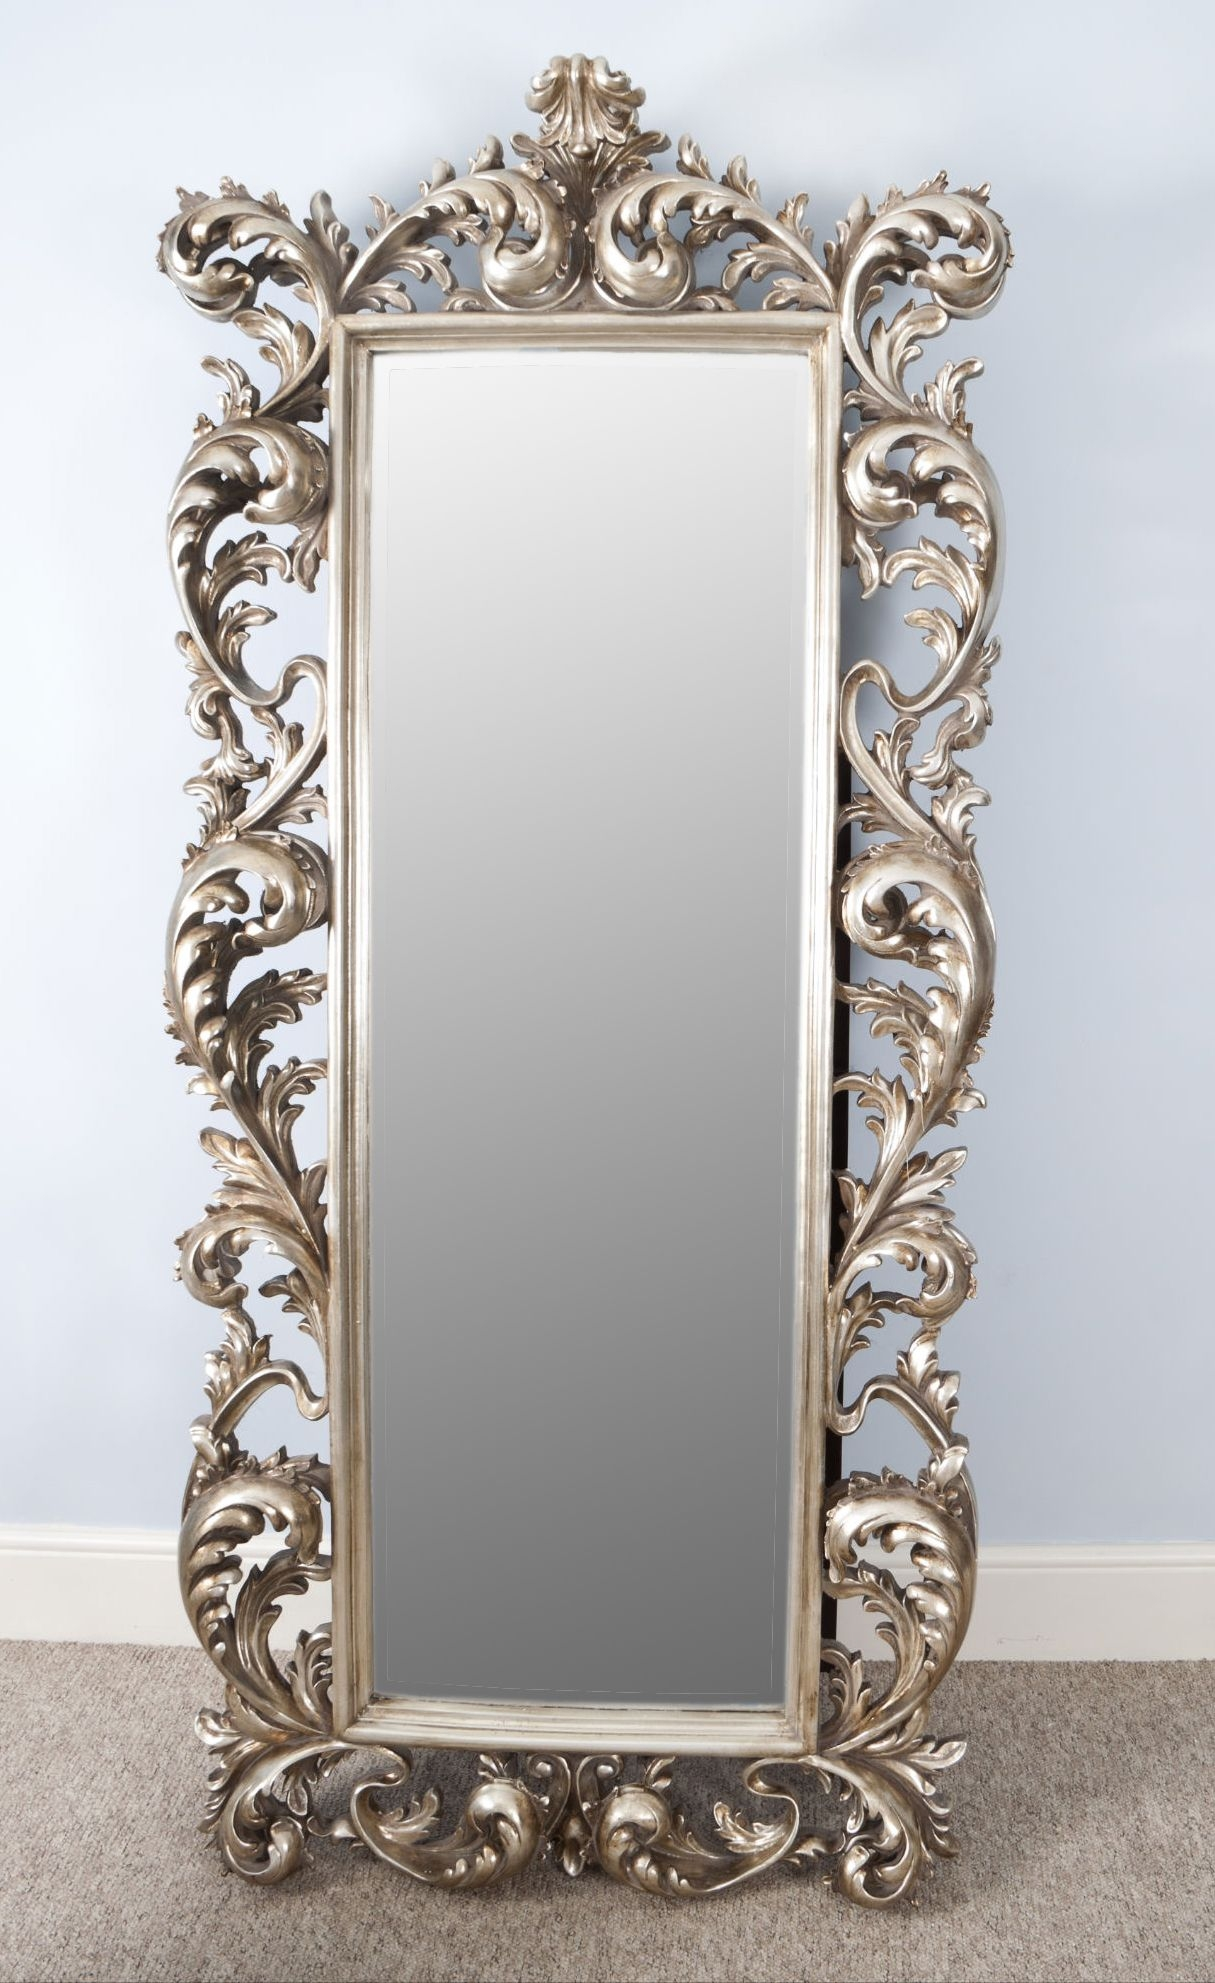 Classic Impression On Antique Wall Mirrors Vwho Pertaining To Large Silver Vintage Mirror (Image 4 of 15)